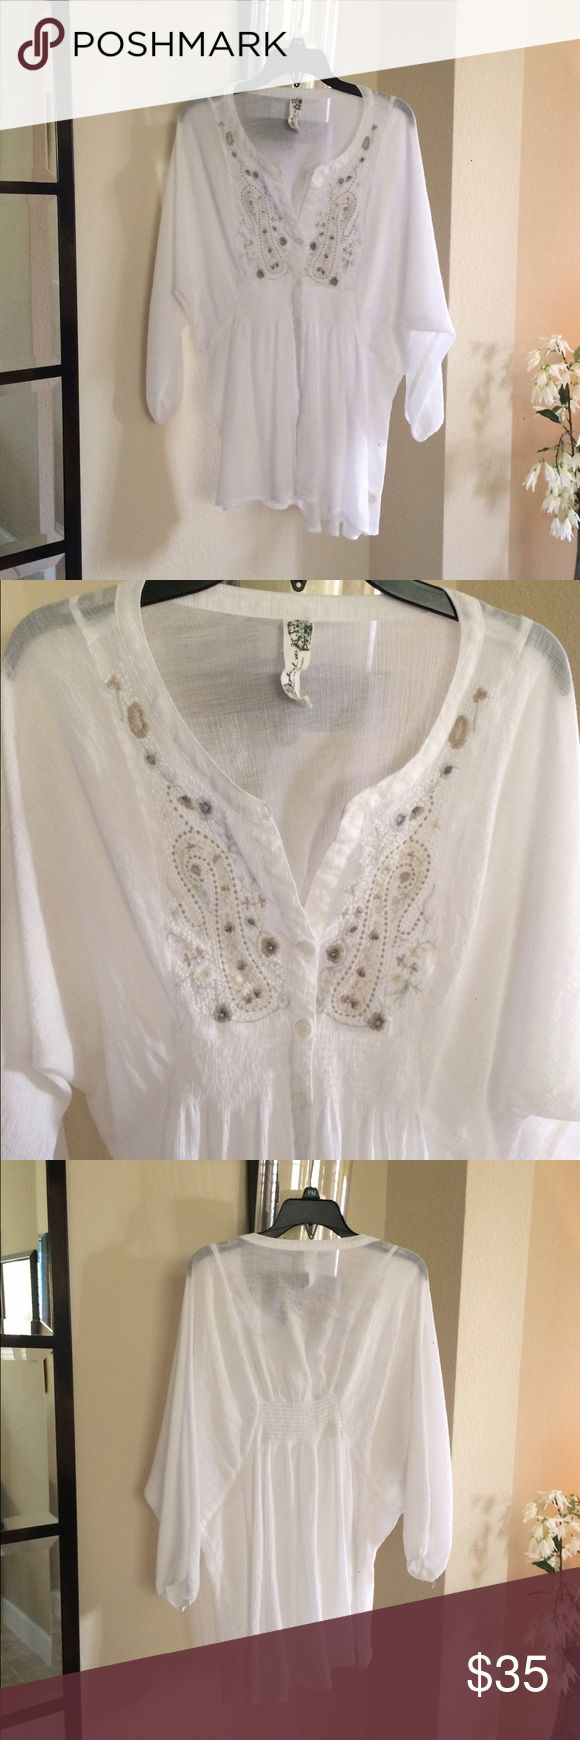 Free people embroidered white gauze top small Free people white gauze top size small. Beautiful beige embroidery on the front and smocked in the back. Flowy and sheer. In excellent condition. Smoke free home. Free People Tops Blouses